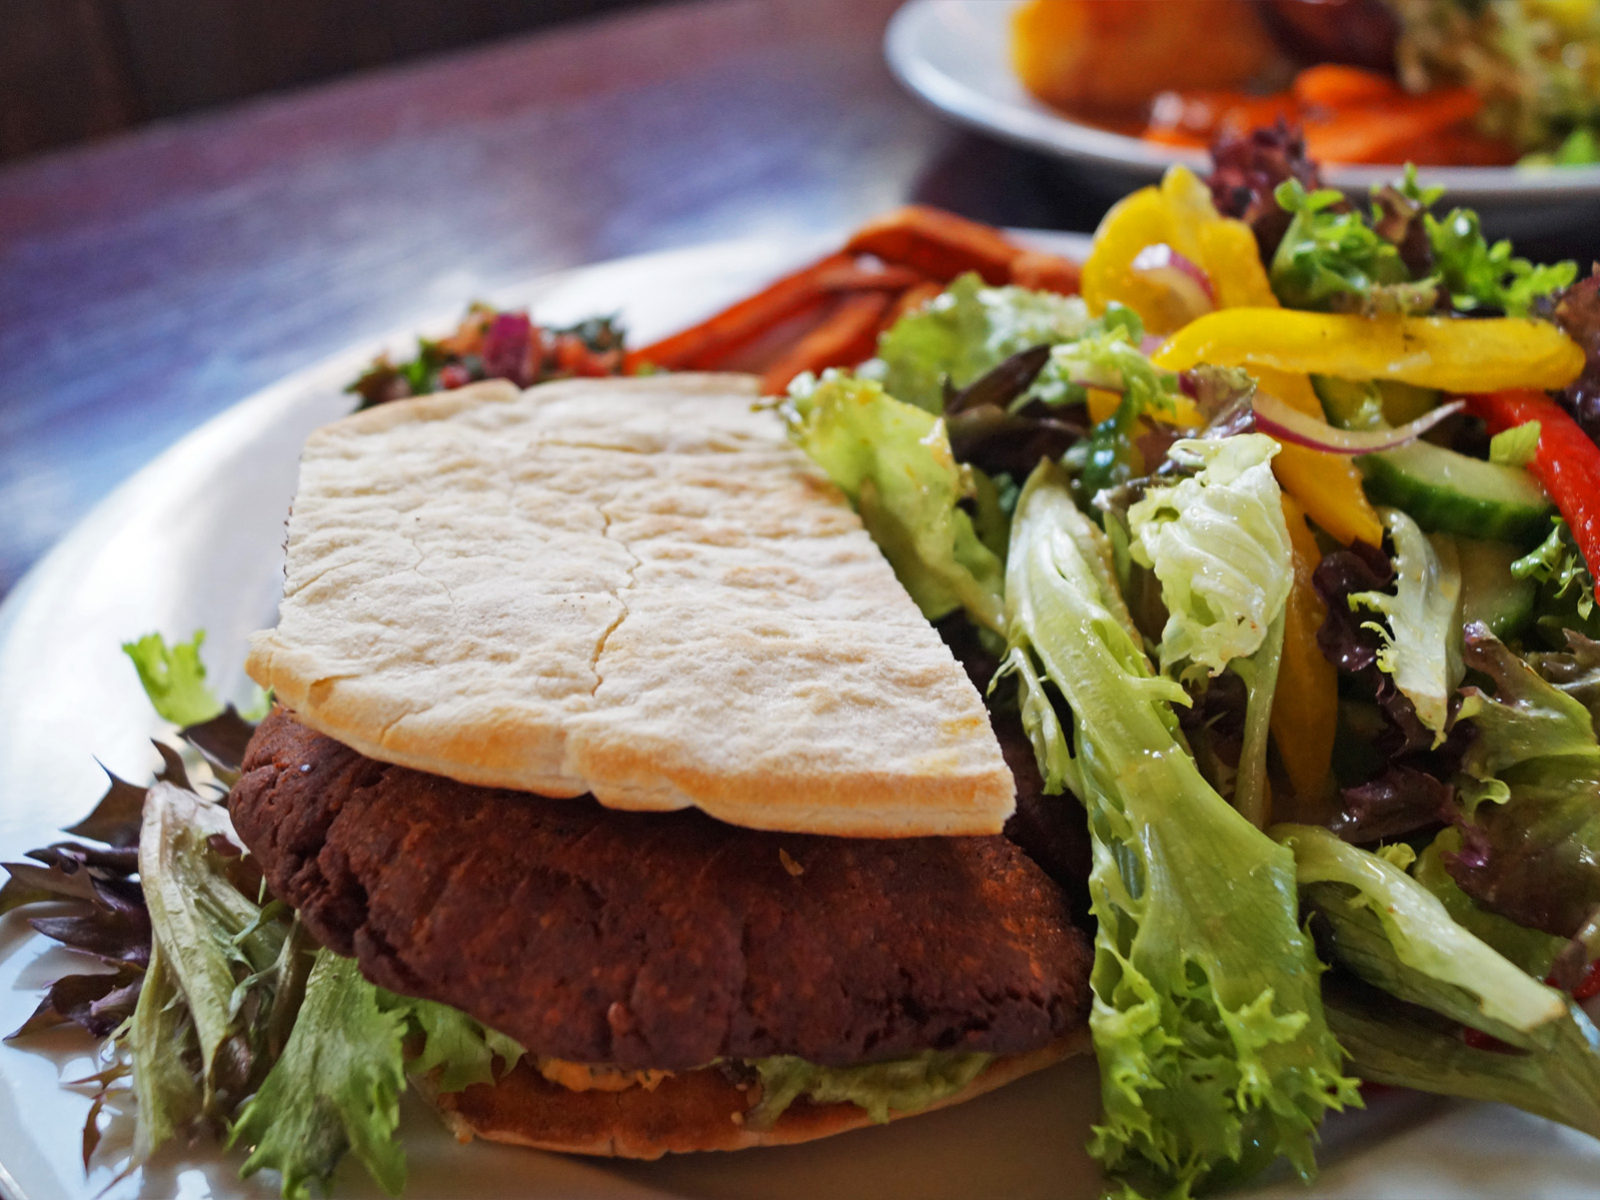 Perfect for a summer day: falafel pita burger with salad